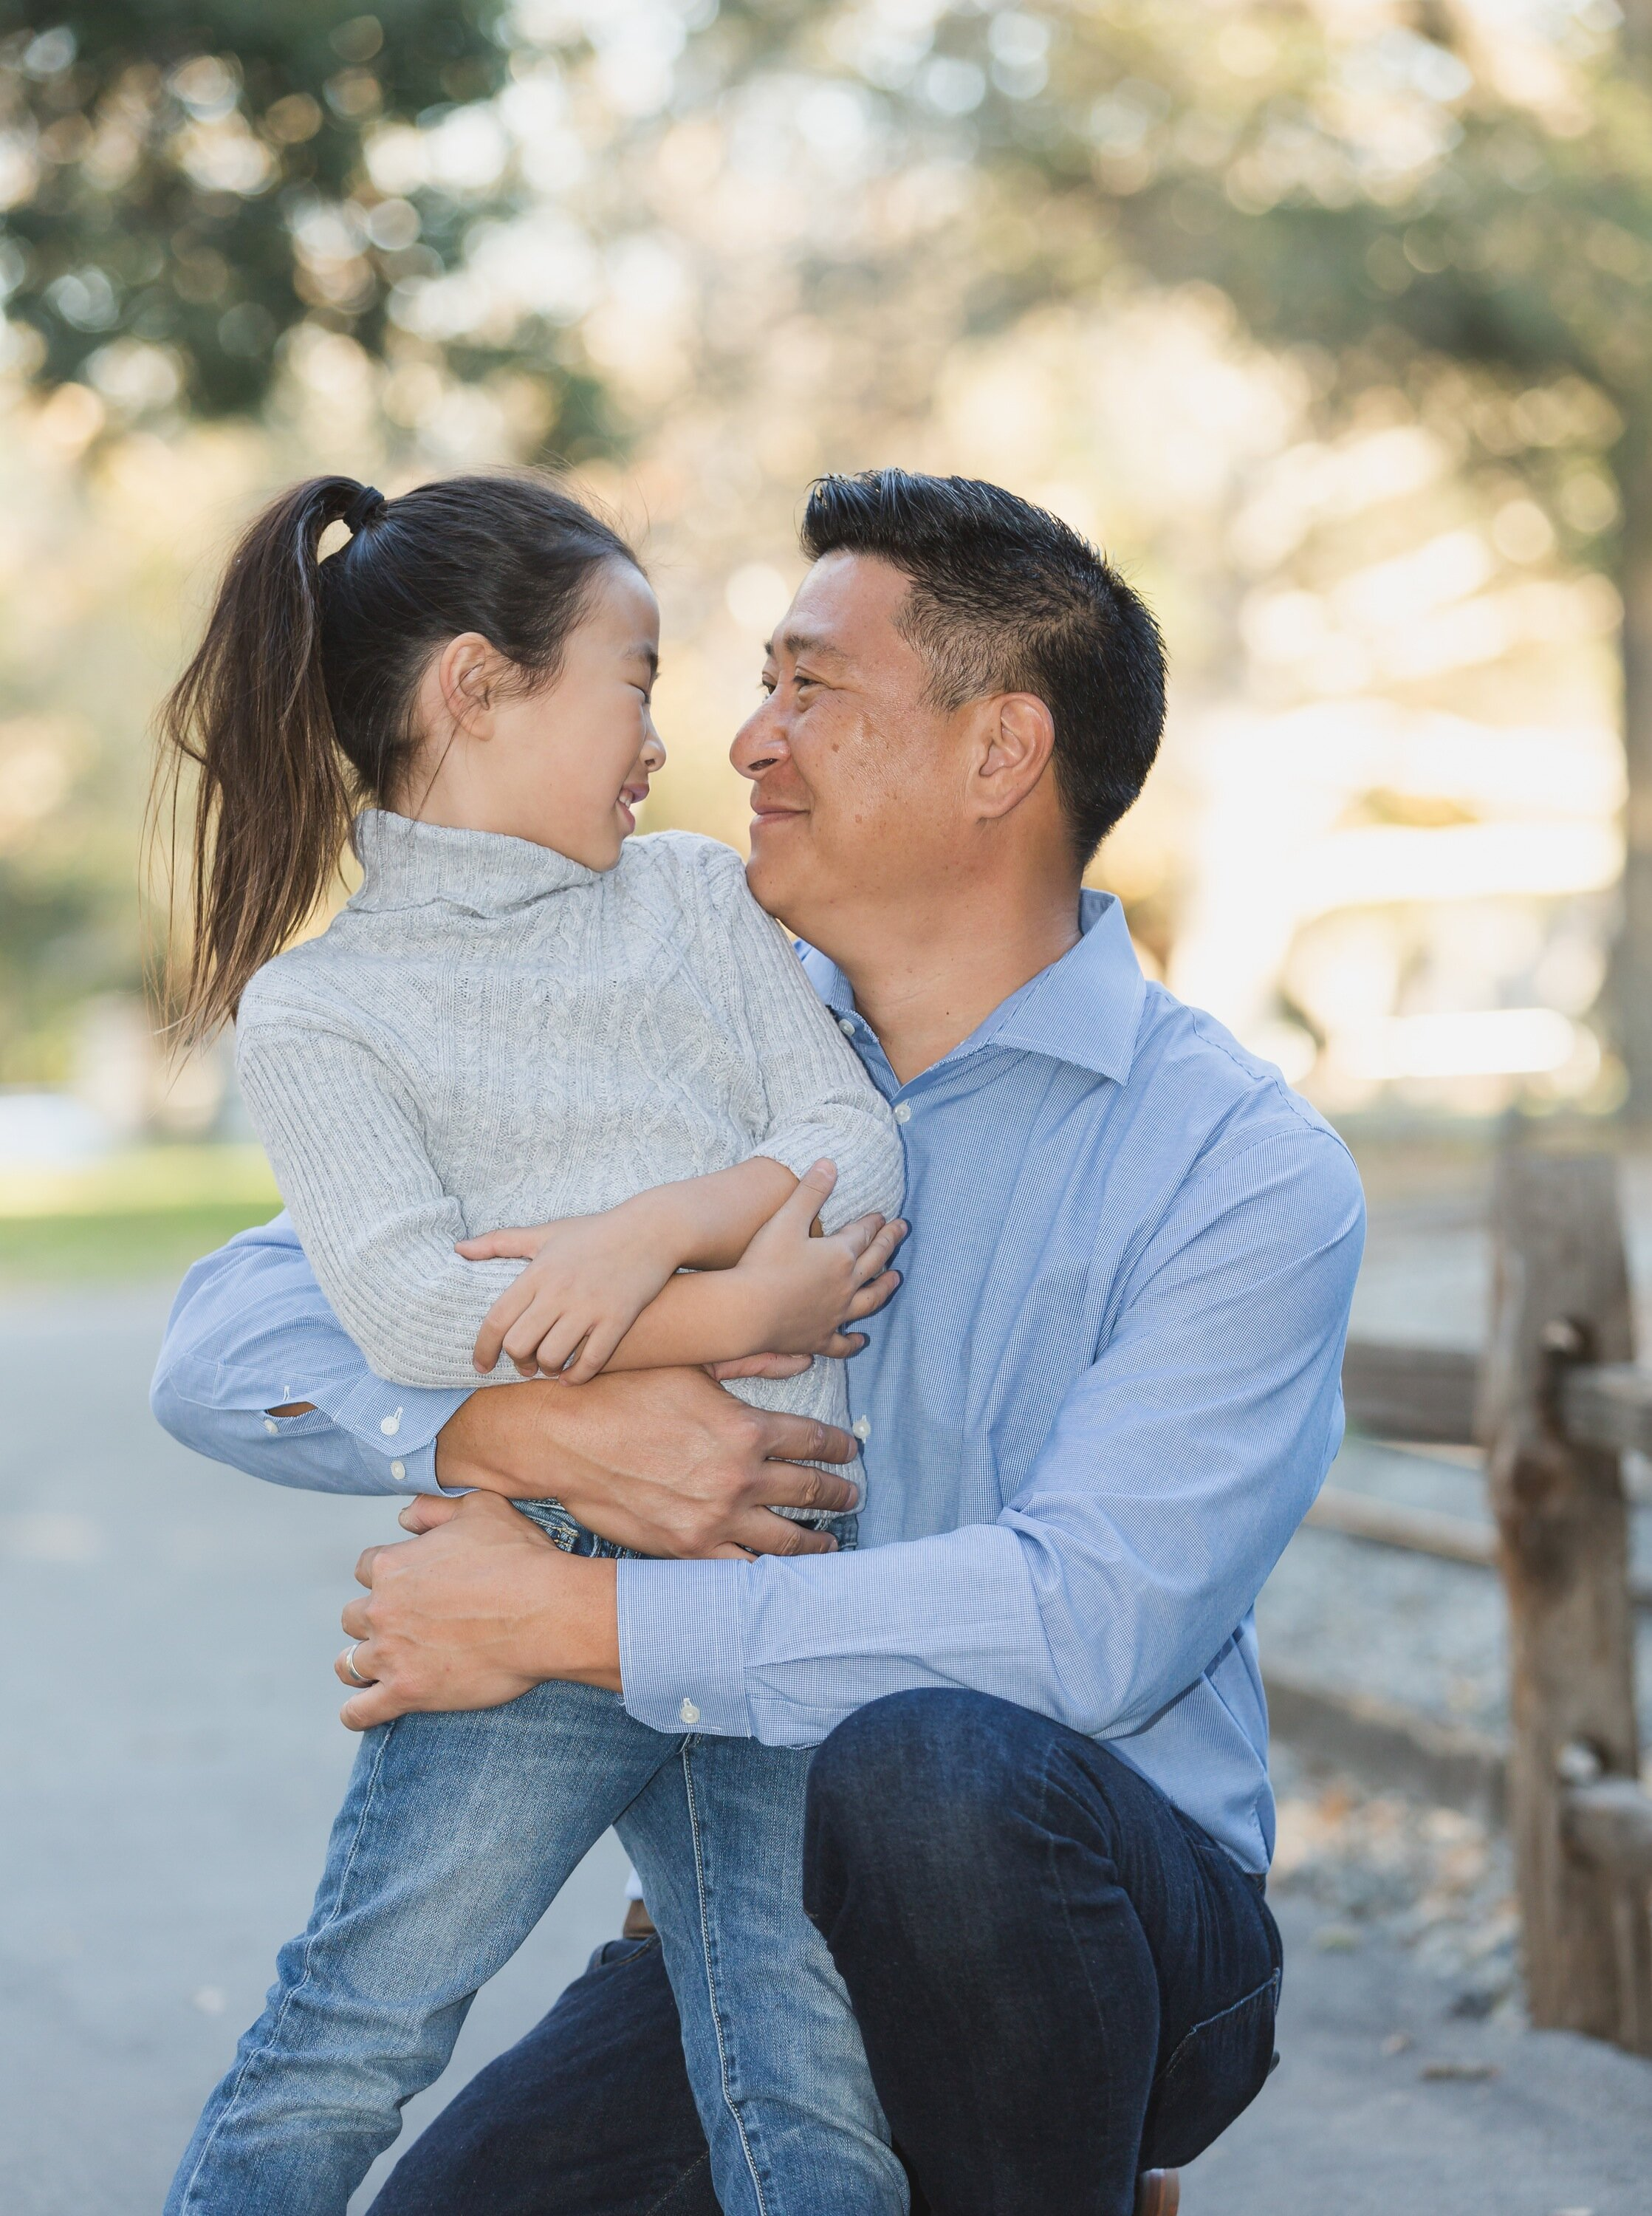 Father Daughter Hugging at Irvine Regional Park Family Photoshoot.jpg